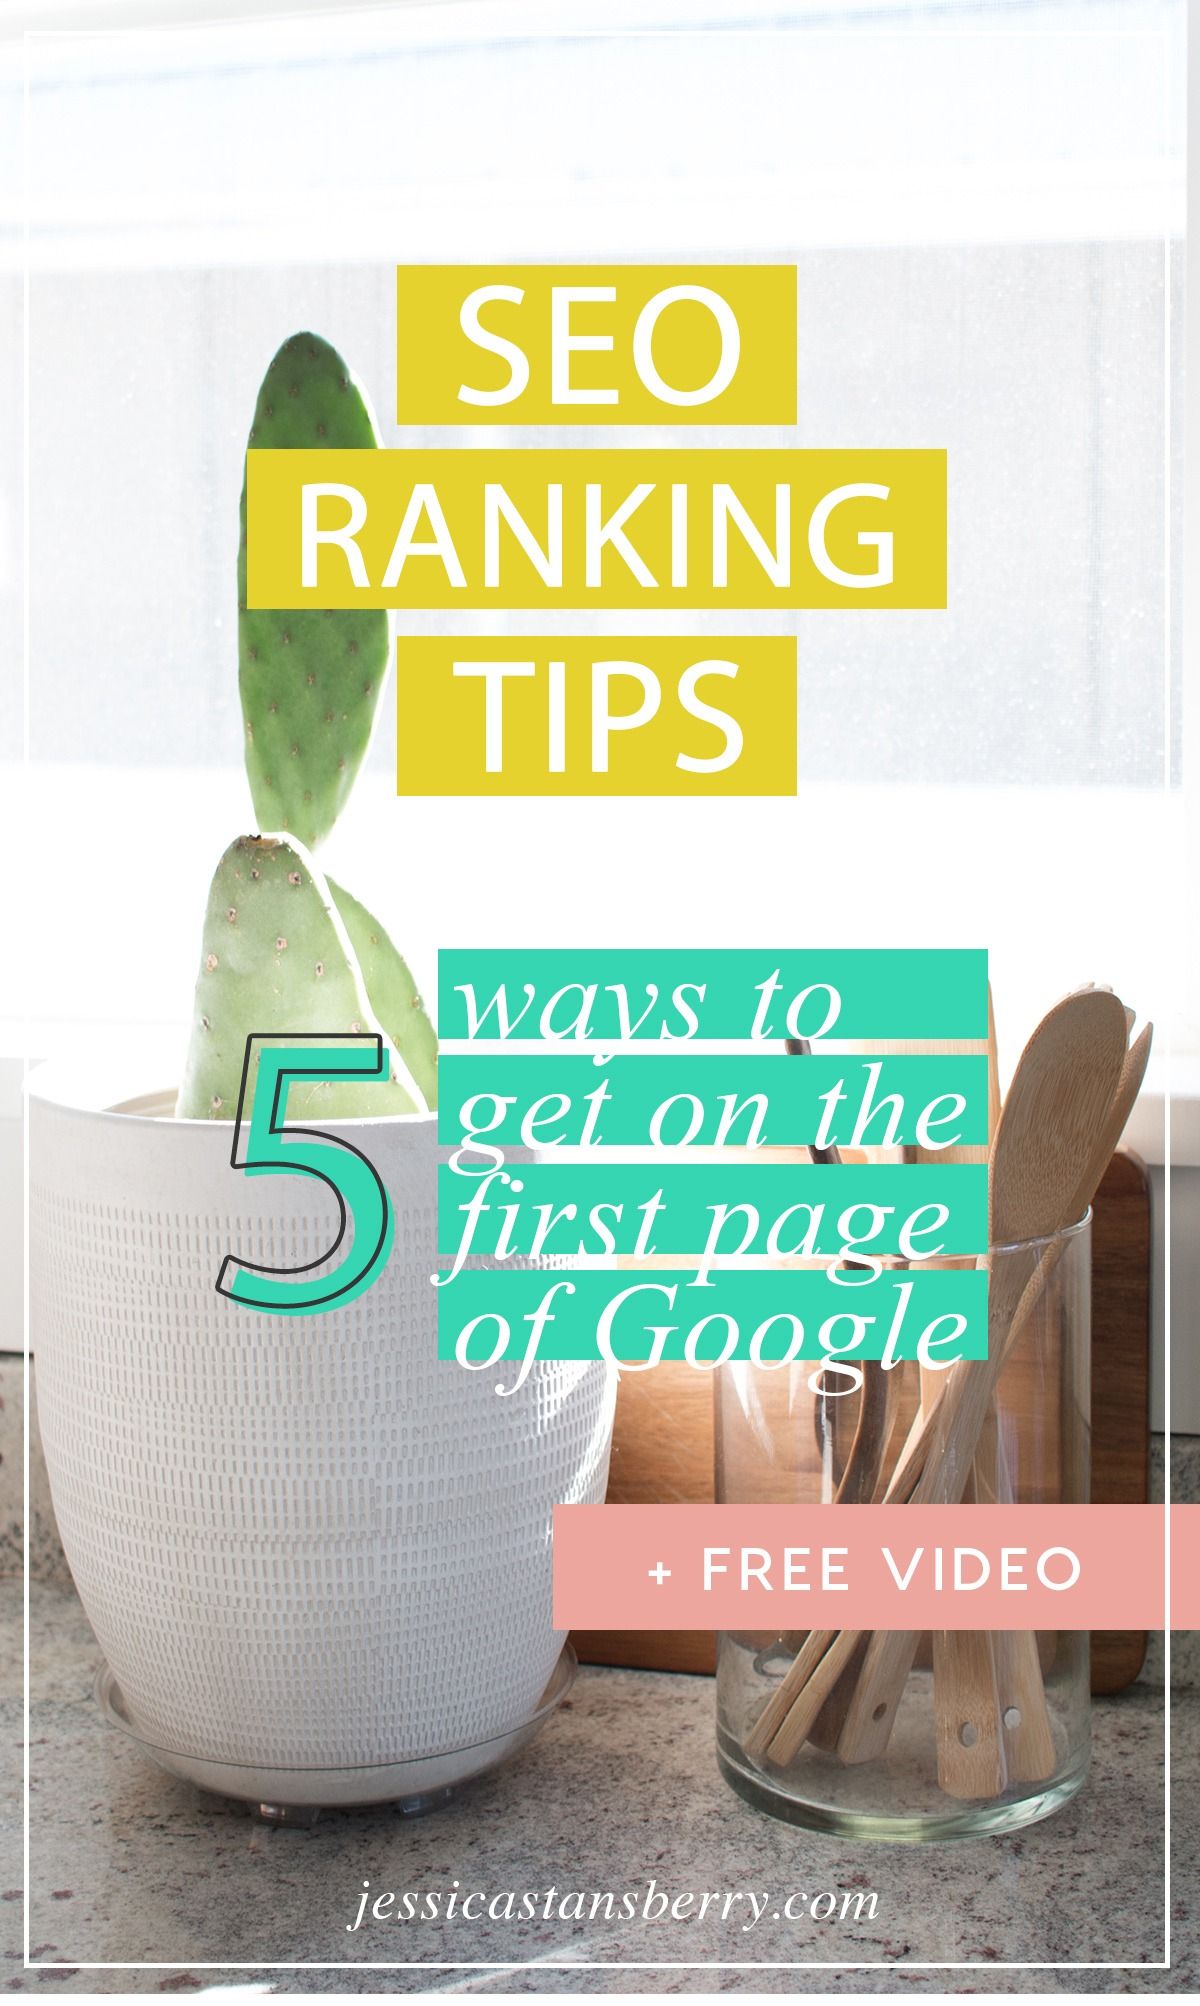 SEO ranking tips | 5 ways to get on the first page of Google